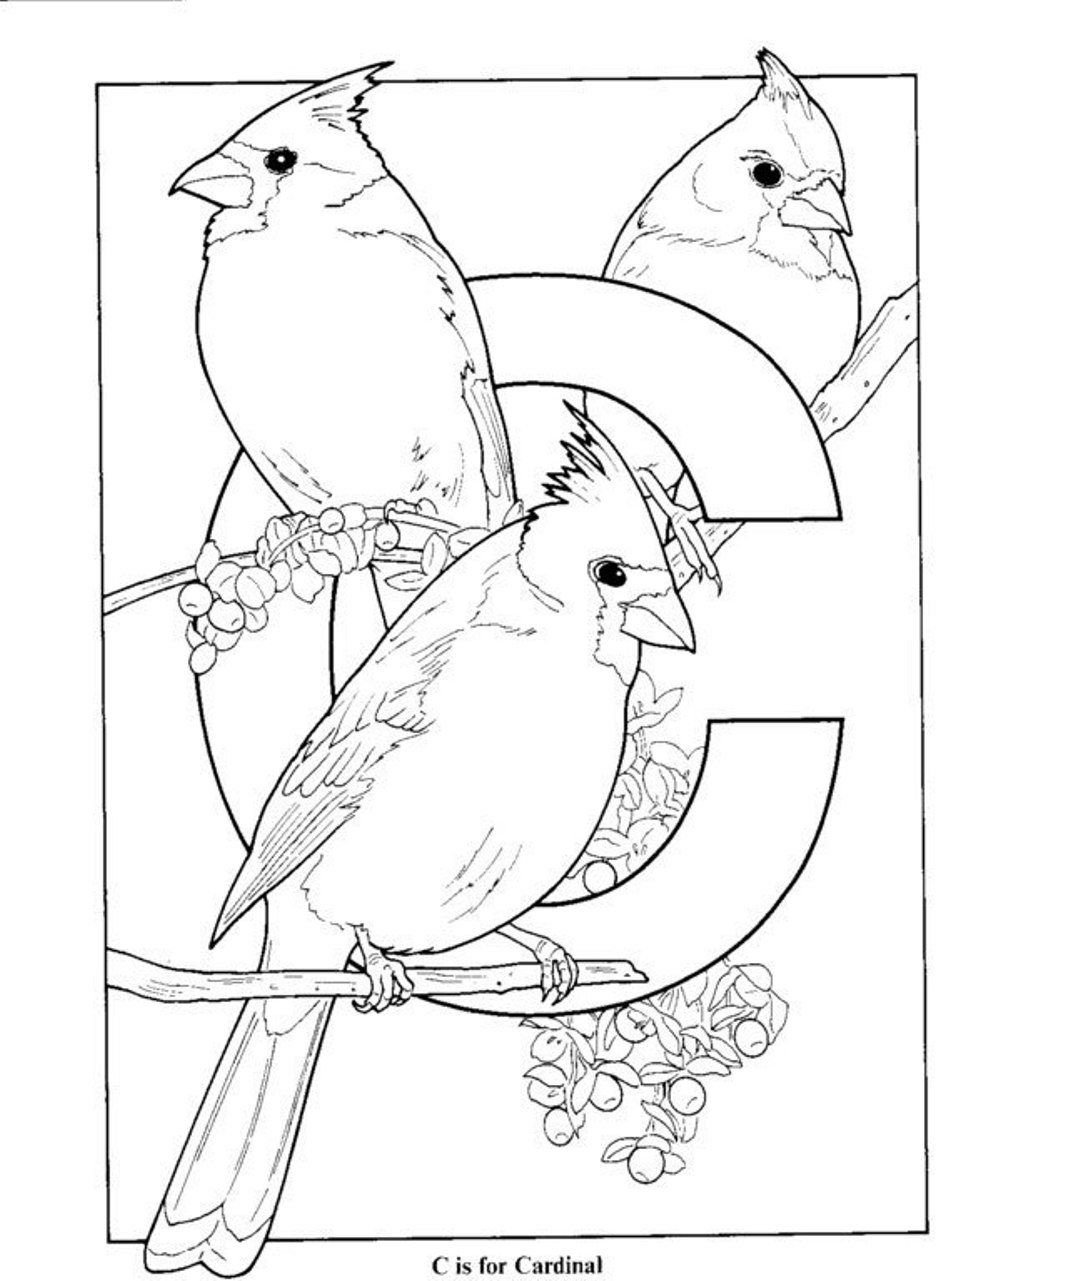 Az Coloring Pages Az Cardinals Coloring Pages At Getdrawings Free For Personal Entitlementtrap Com Bird Coloring Pages Coloring Pages Paw Patrol Coloring Pages